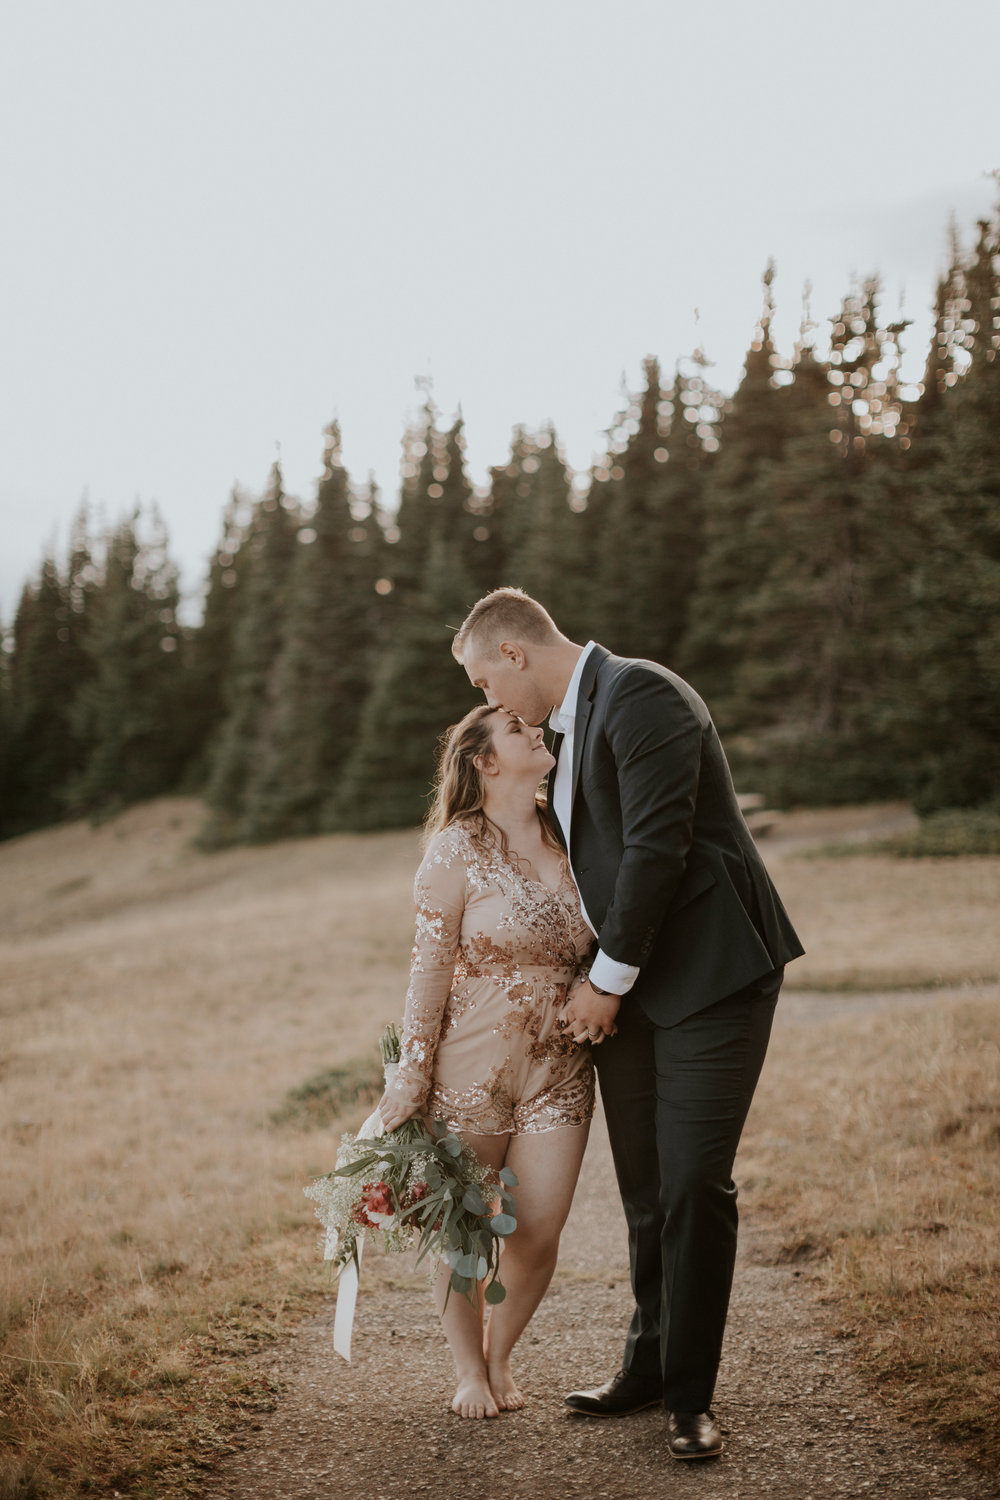 PNW-Hurricane-Ridge-Port-Angeles-Washington-elopement-photographer-kayla-dawn-photography-kayladawnphoto-wedding-anniversary-photoshoot-olympic-peninsula-293.jpg